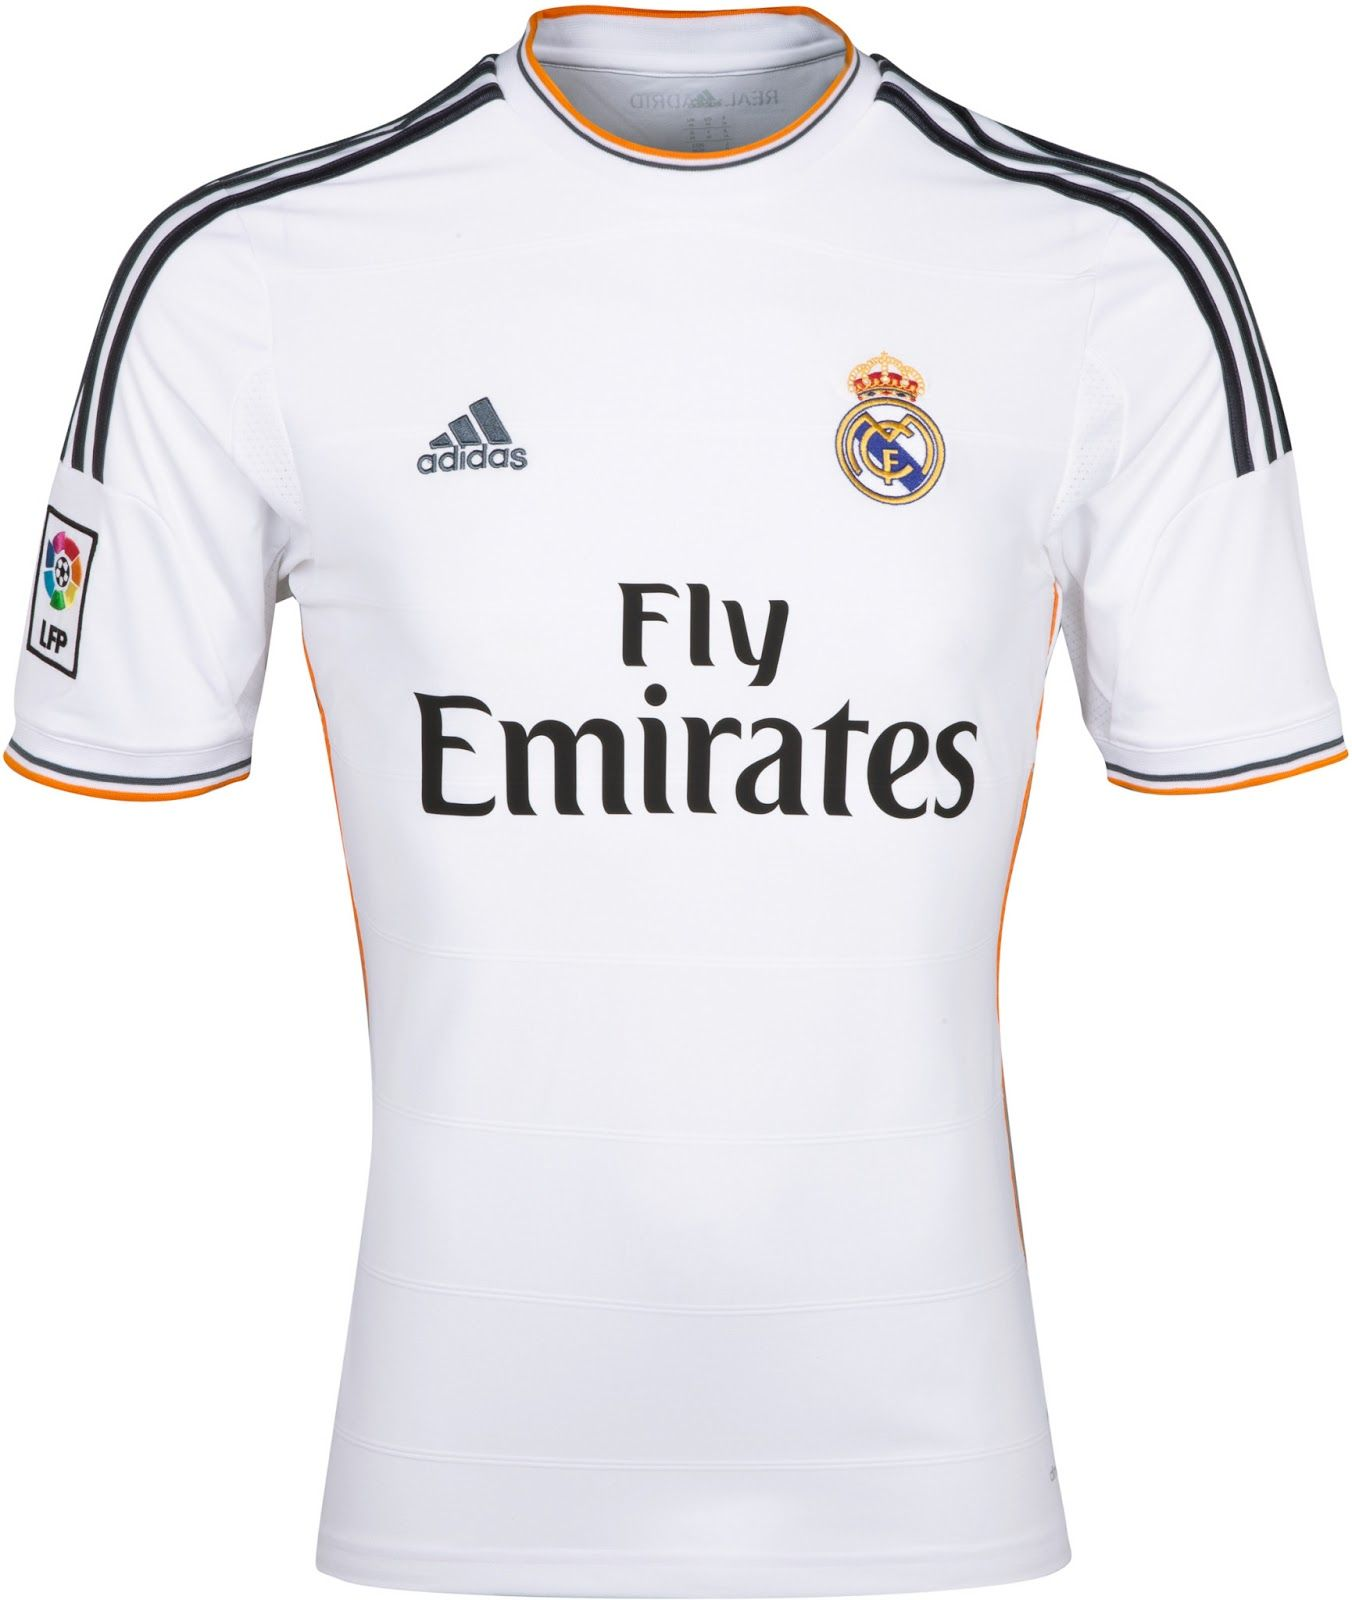 Camiseta Real Madrid  db1b074e3